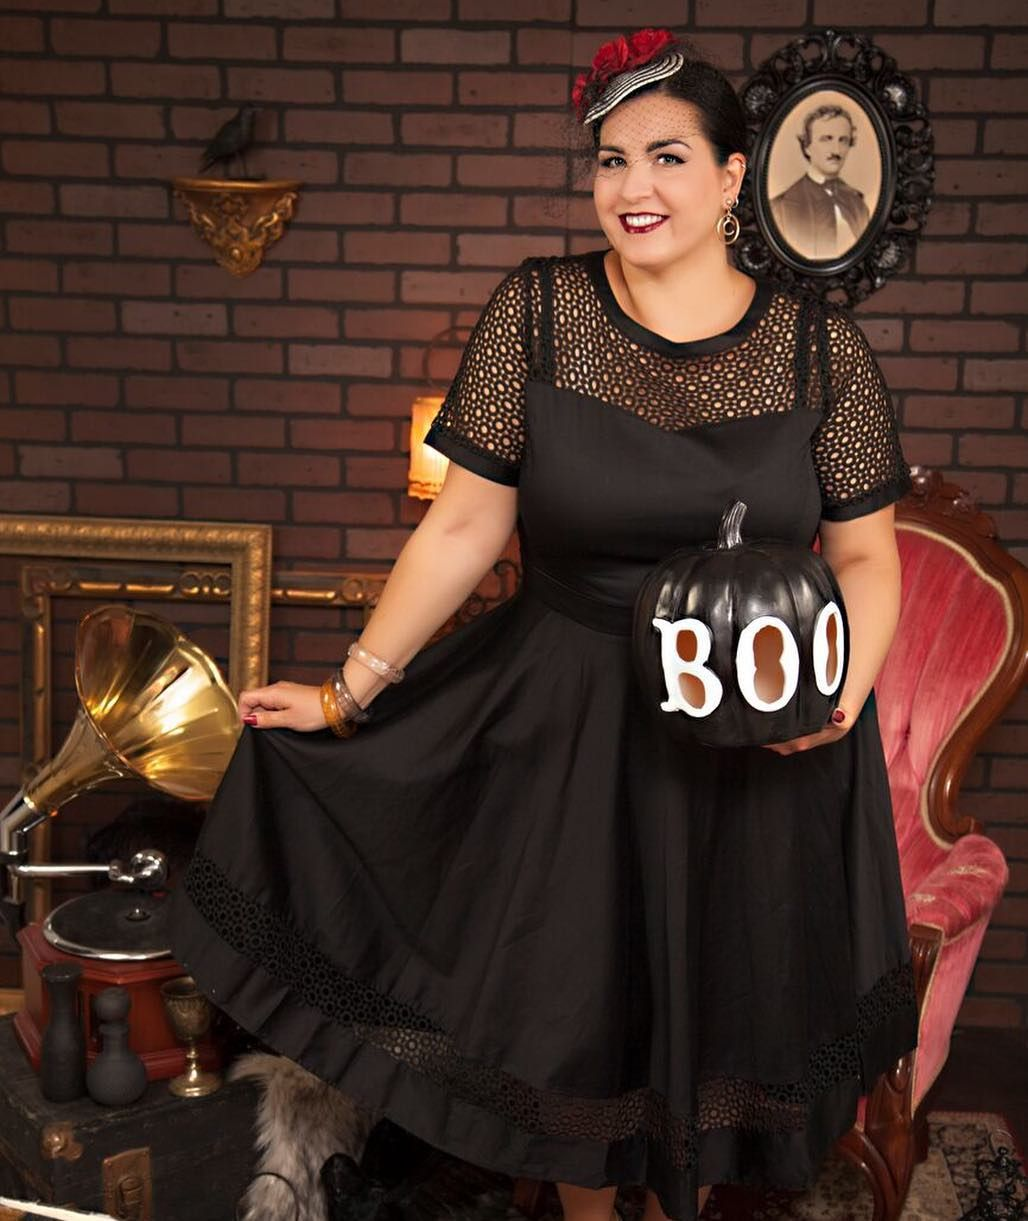 f619a751e0800e @buttercreambettie looks spookily glamorous in this Halloween shot  Halloween Shots, Vintage Inspired Fashion,